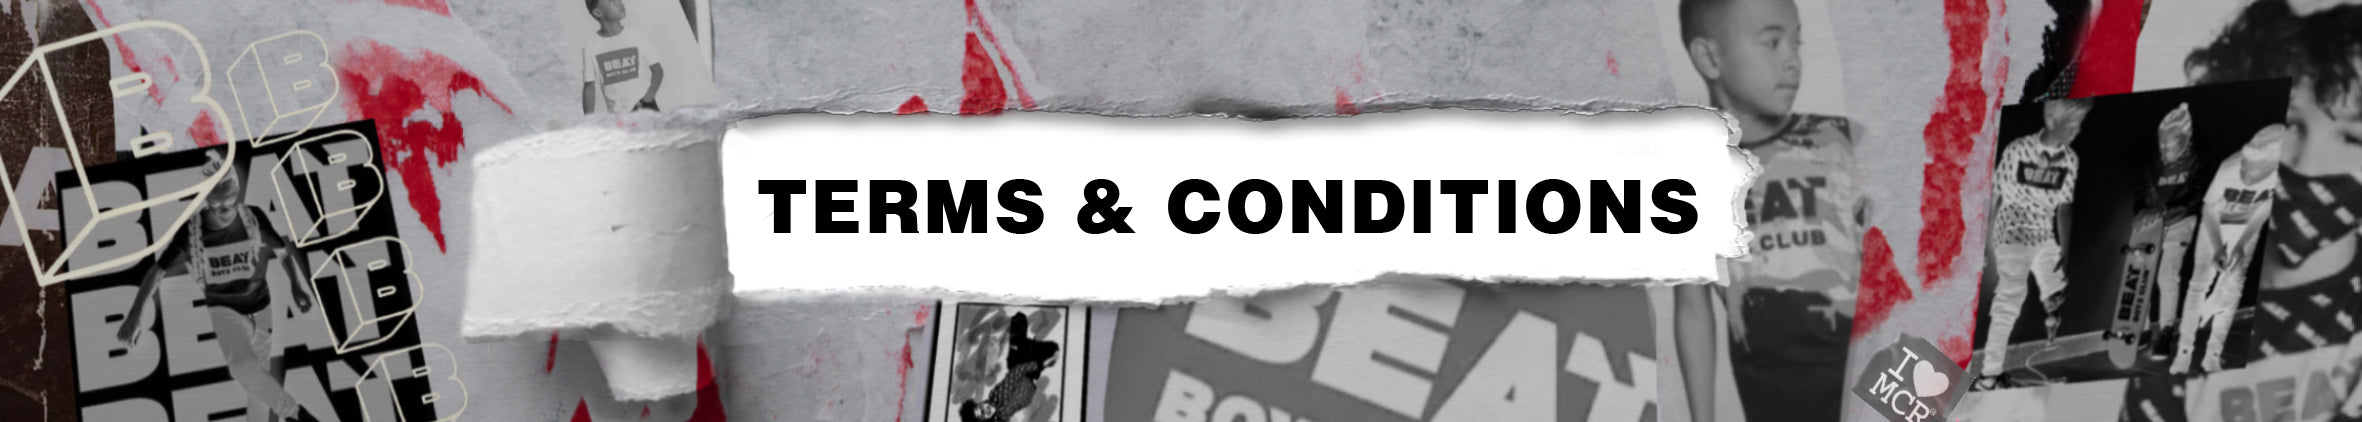 Beat Boyz Club Terms and Conditions